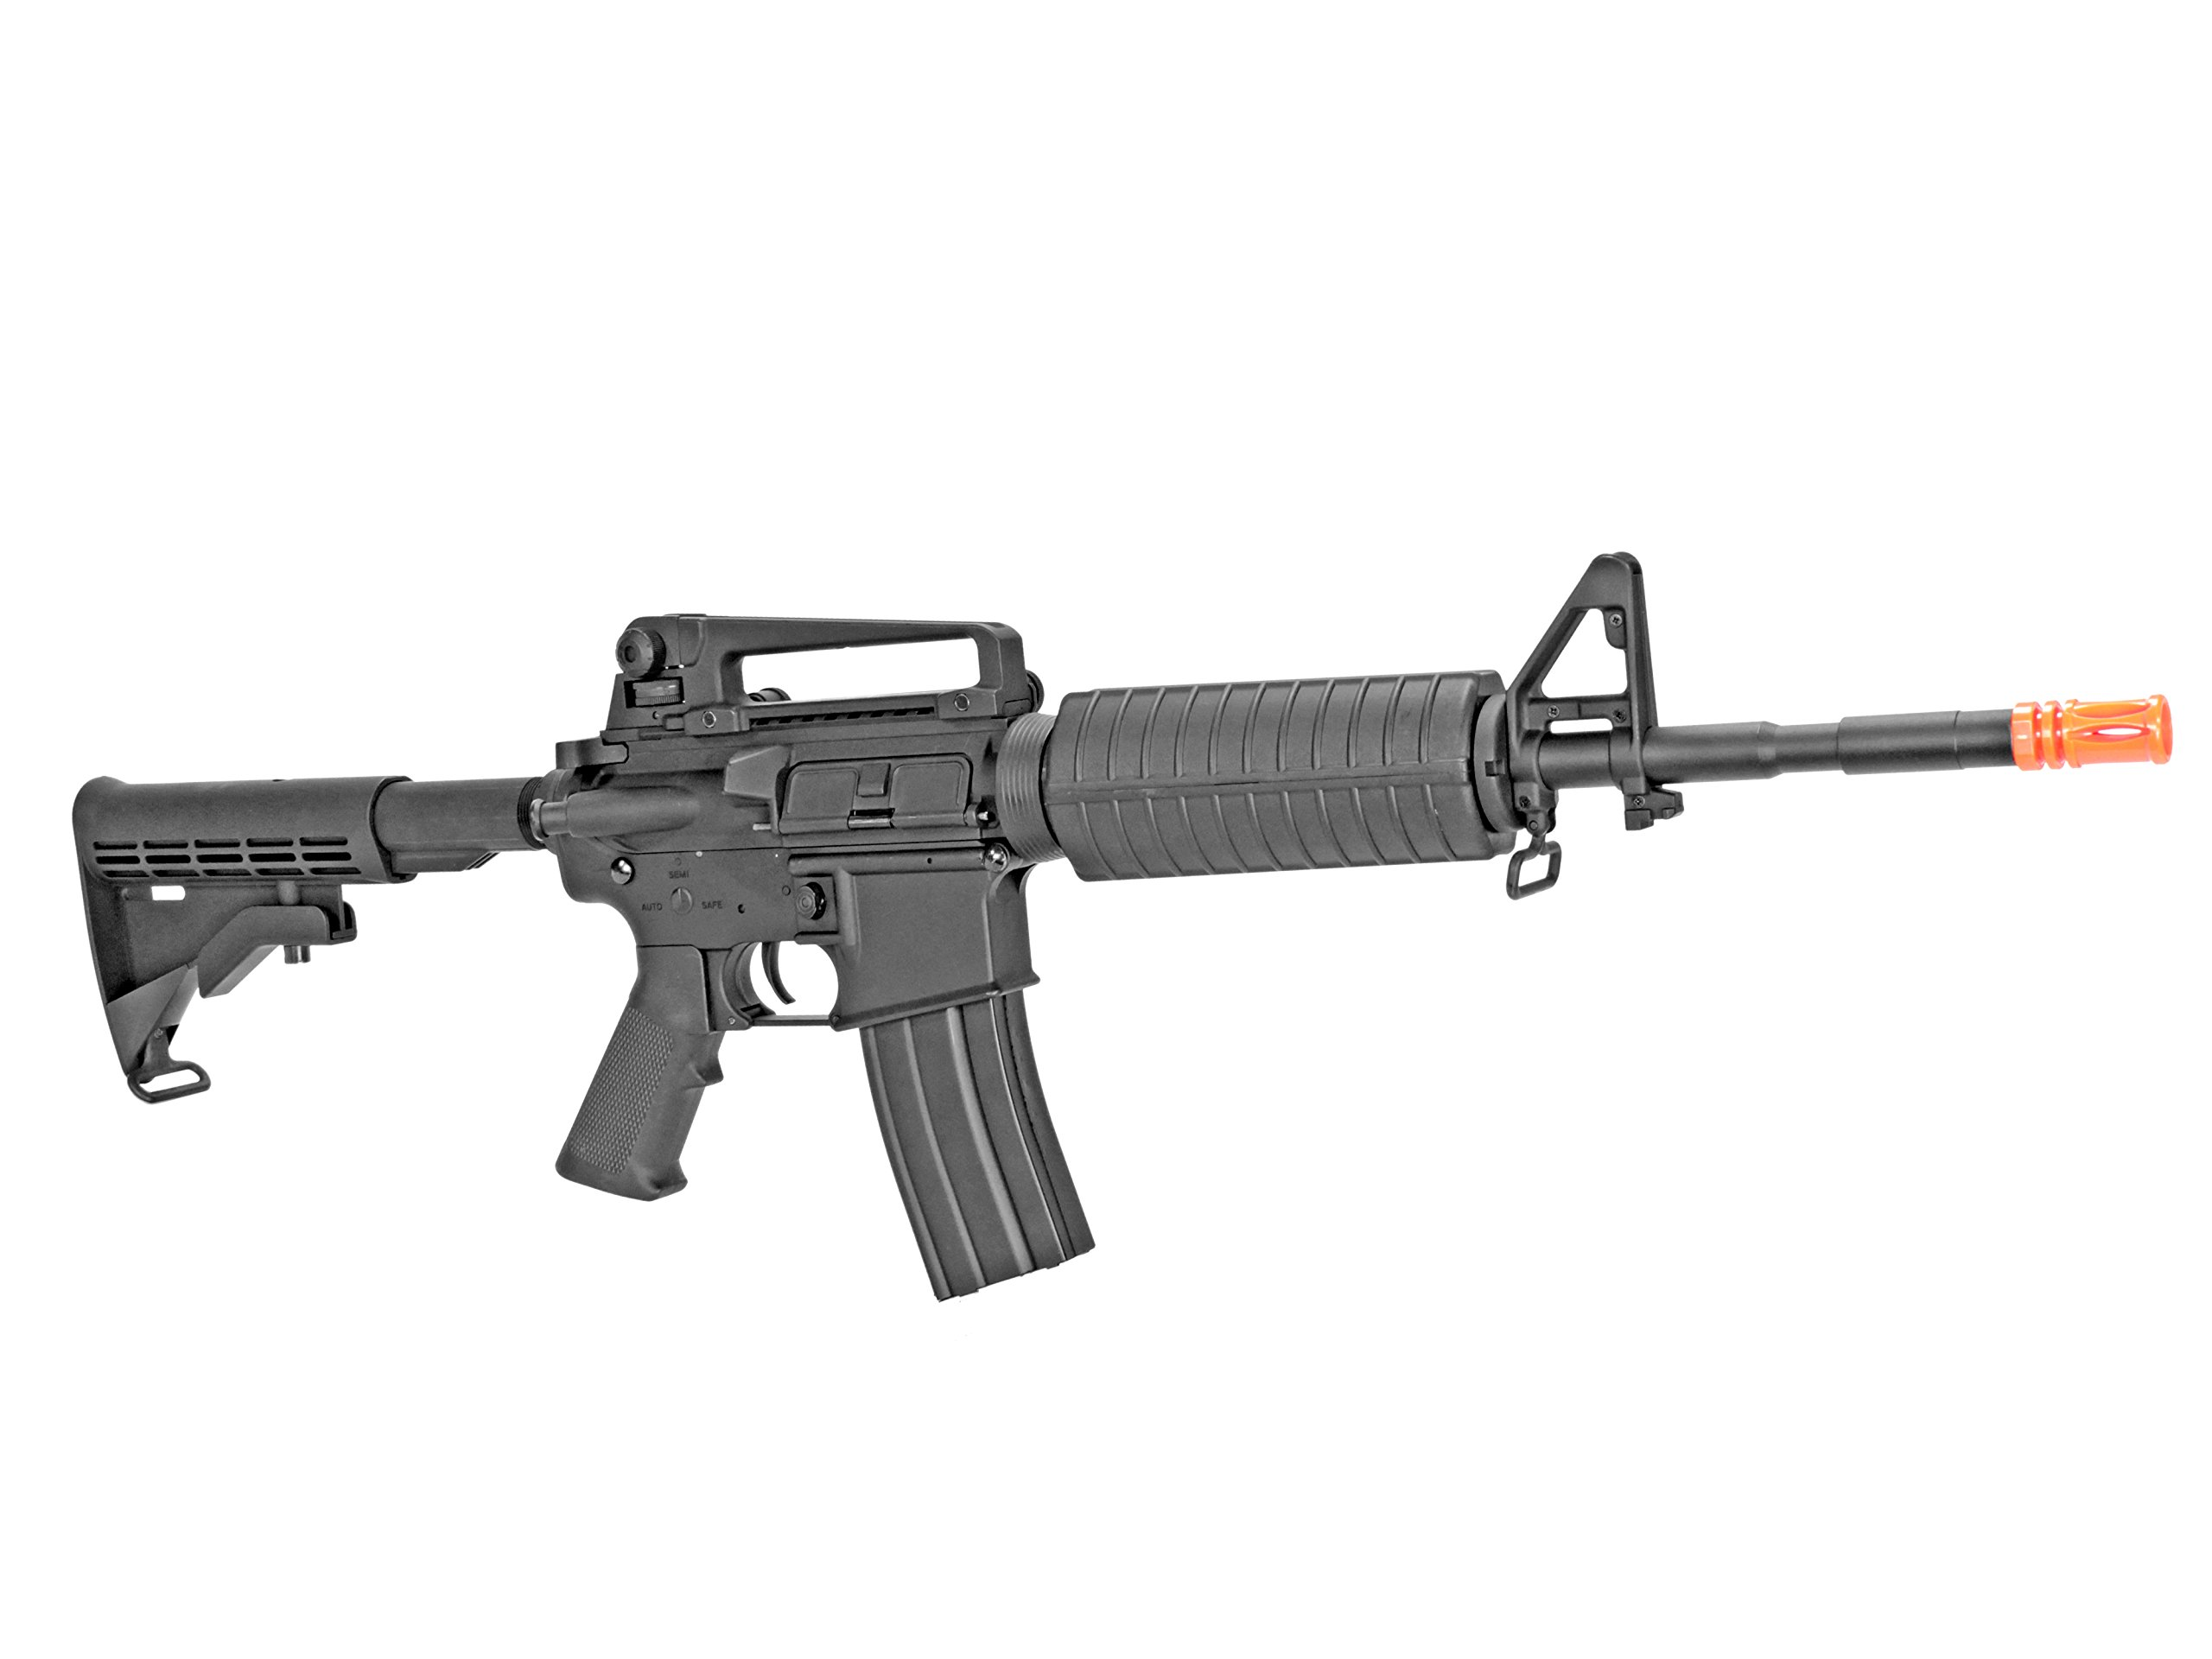 MetalTac CYMA CM010 Electric Airsoft Gun with Metal Gearbox Version 2, Full Auto AEG, Powerful Spring 370 Fps with .20g BBs